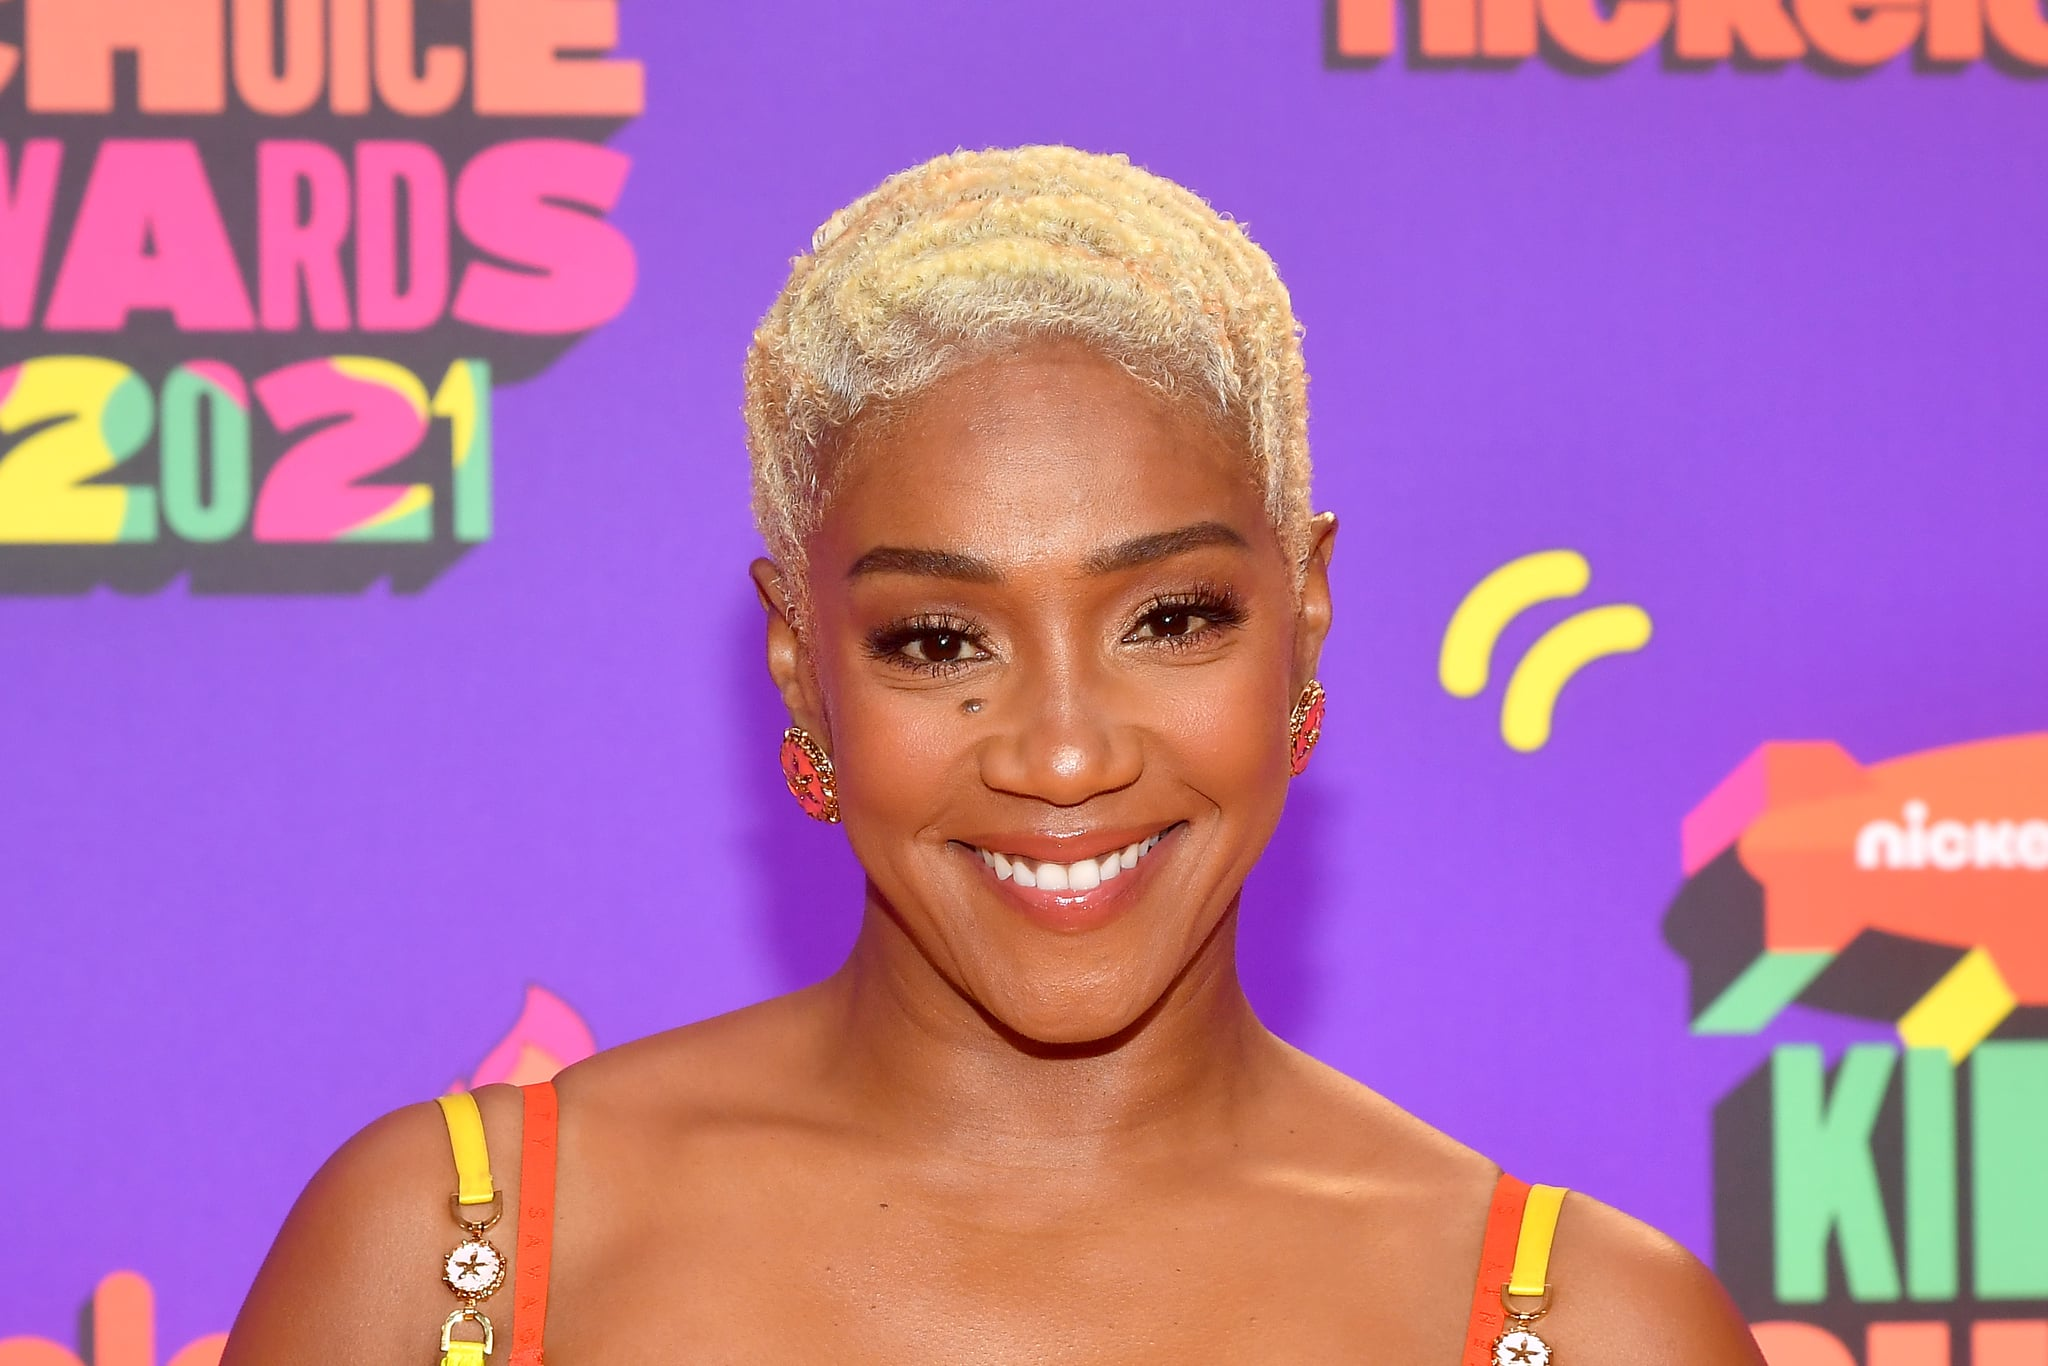 SANTA MONICA, CALIFORNIA - MARCH 13: In this image released on March 13, Tiffany Haddish attends Nickelodeon's Kids' Choice Awards at Barker Hangar on March 13, 2021 in Santa Monica, California. (Photo by Amy Sussman/KCA2021/Getty Images for Nickelodeon)